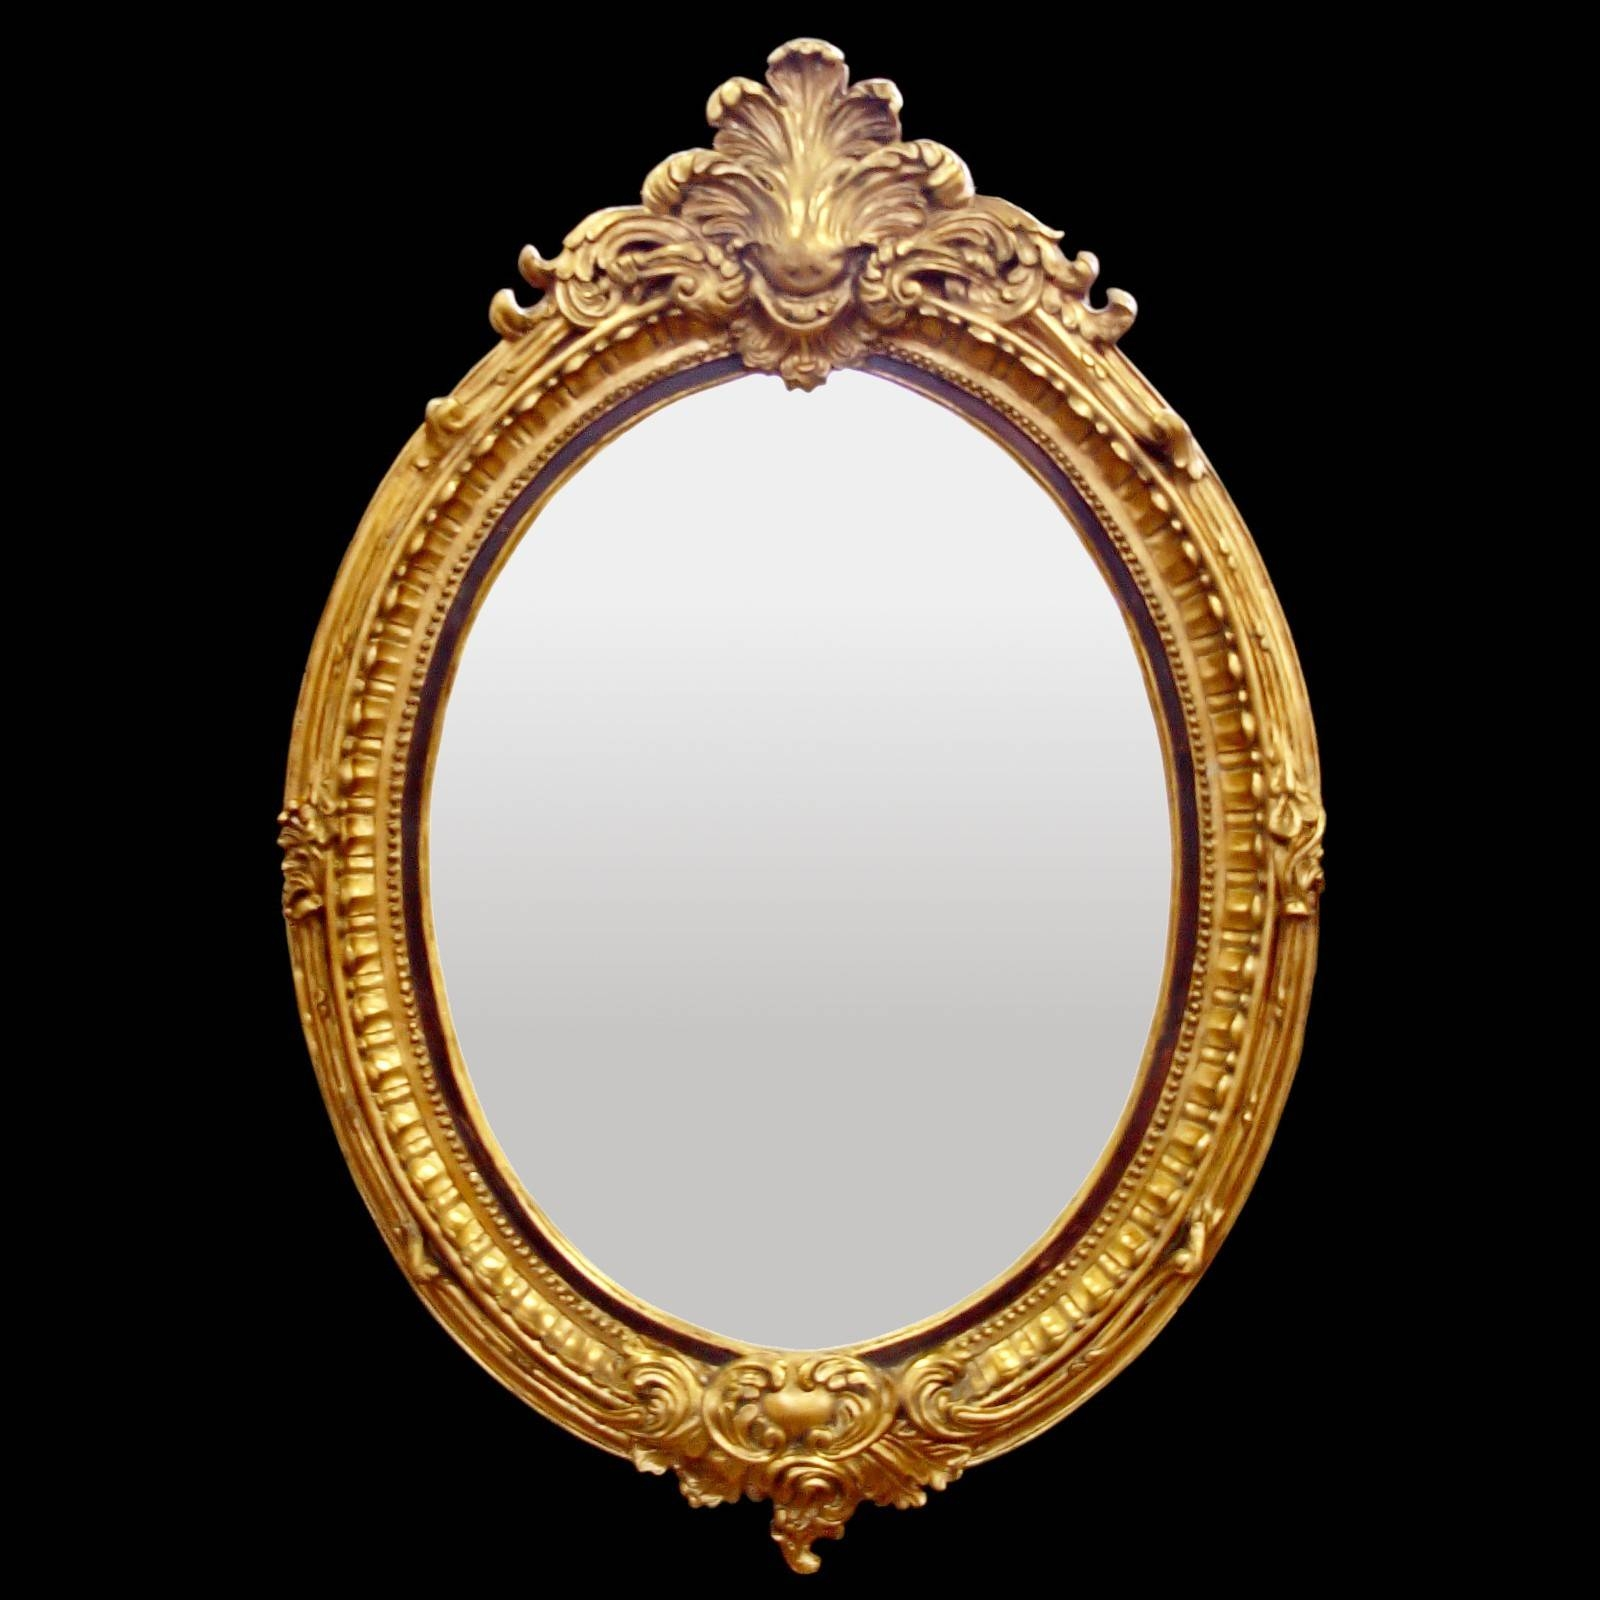 Baroque Hall Mirror Oval Wall Mirror Gold Color Red Leaf Motif In Baroque Style Mirrors (View 5 of 25)